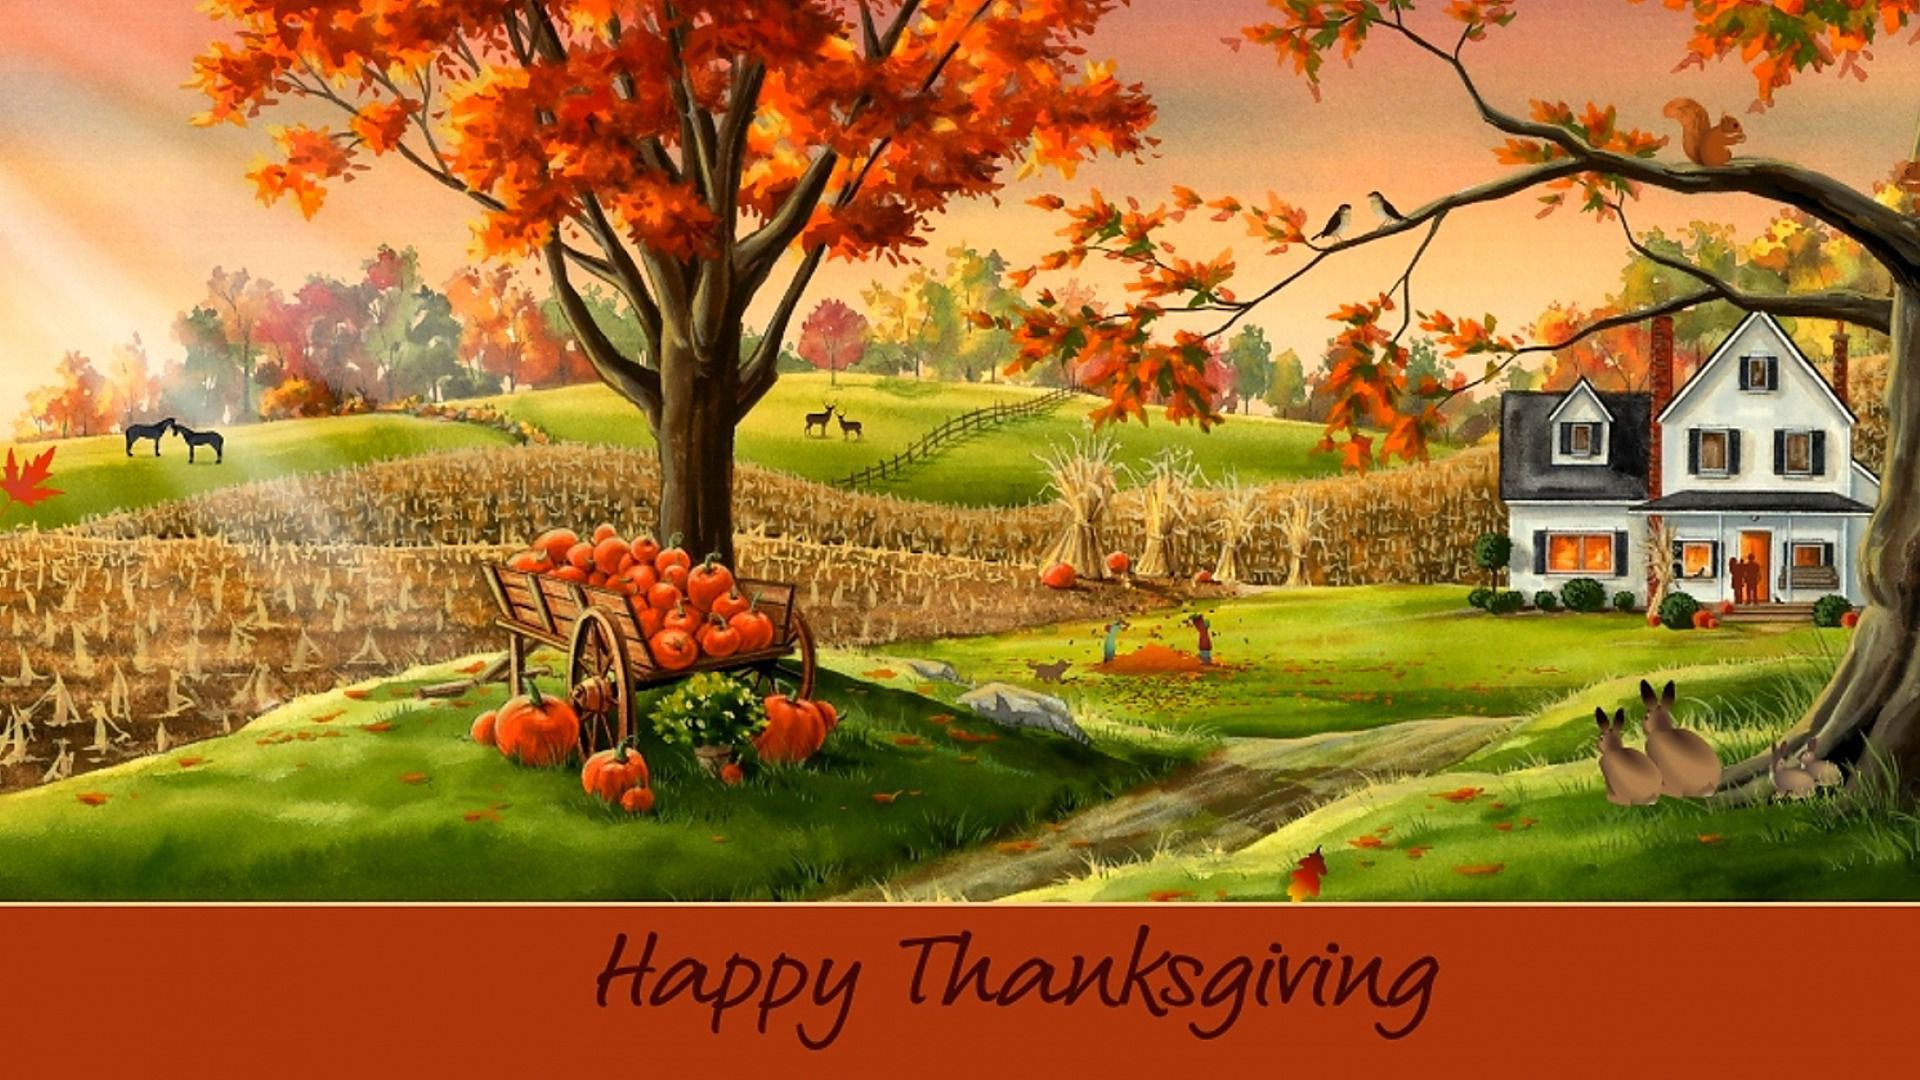 Happy Thanksgiving HD Wallpaper